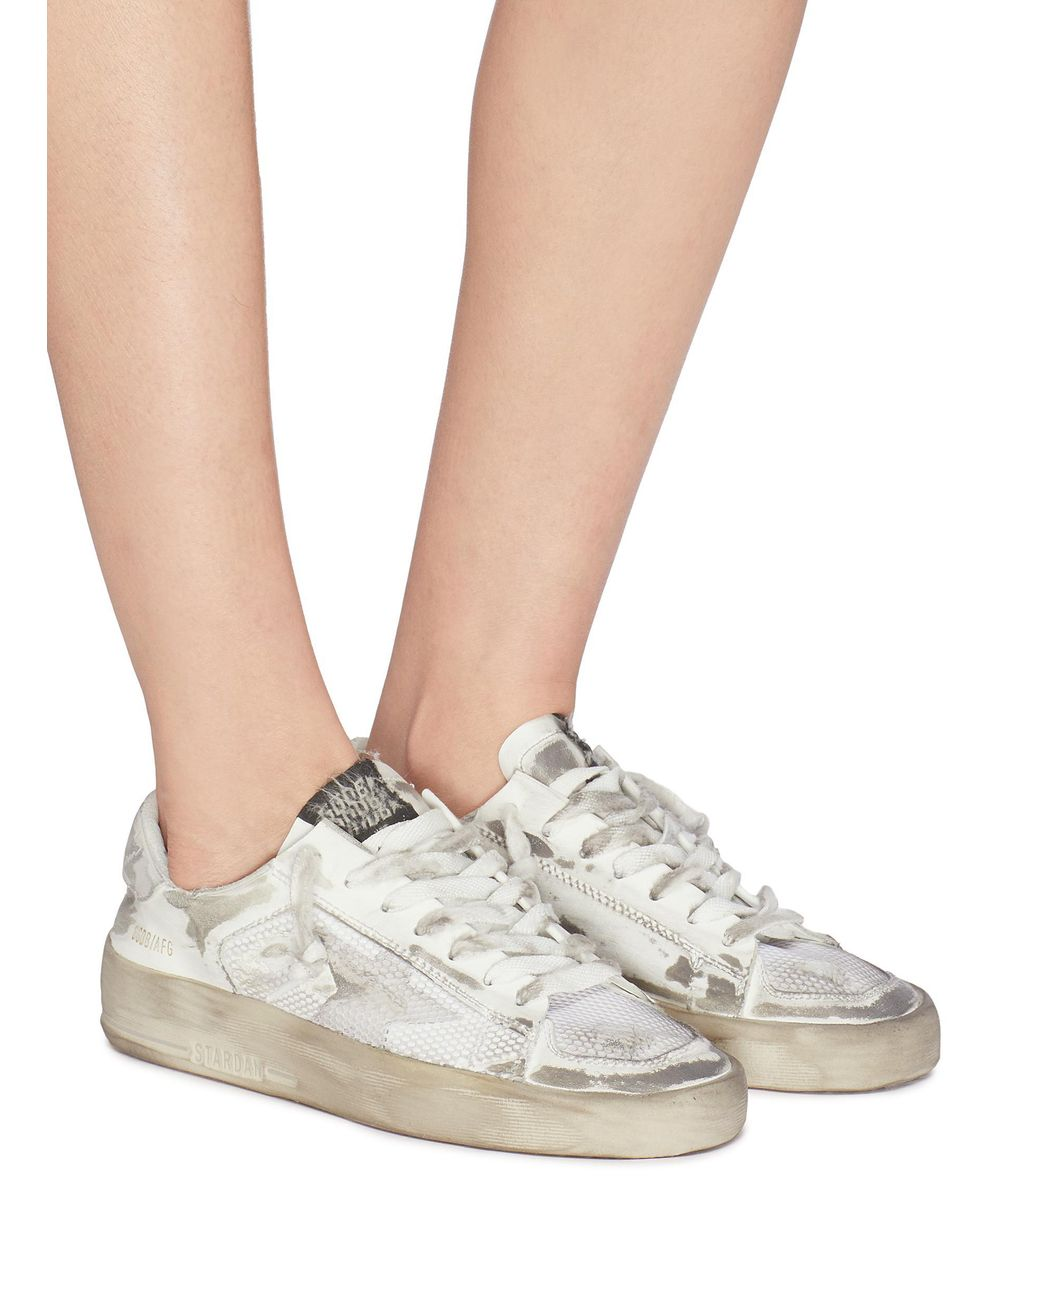 845a97f3a913 golden goose deluxe brand women s white  stardan  mesh panel distressed leather  trainers